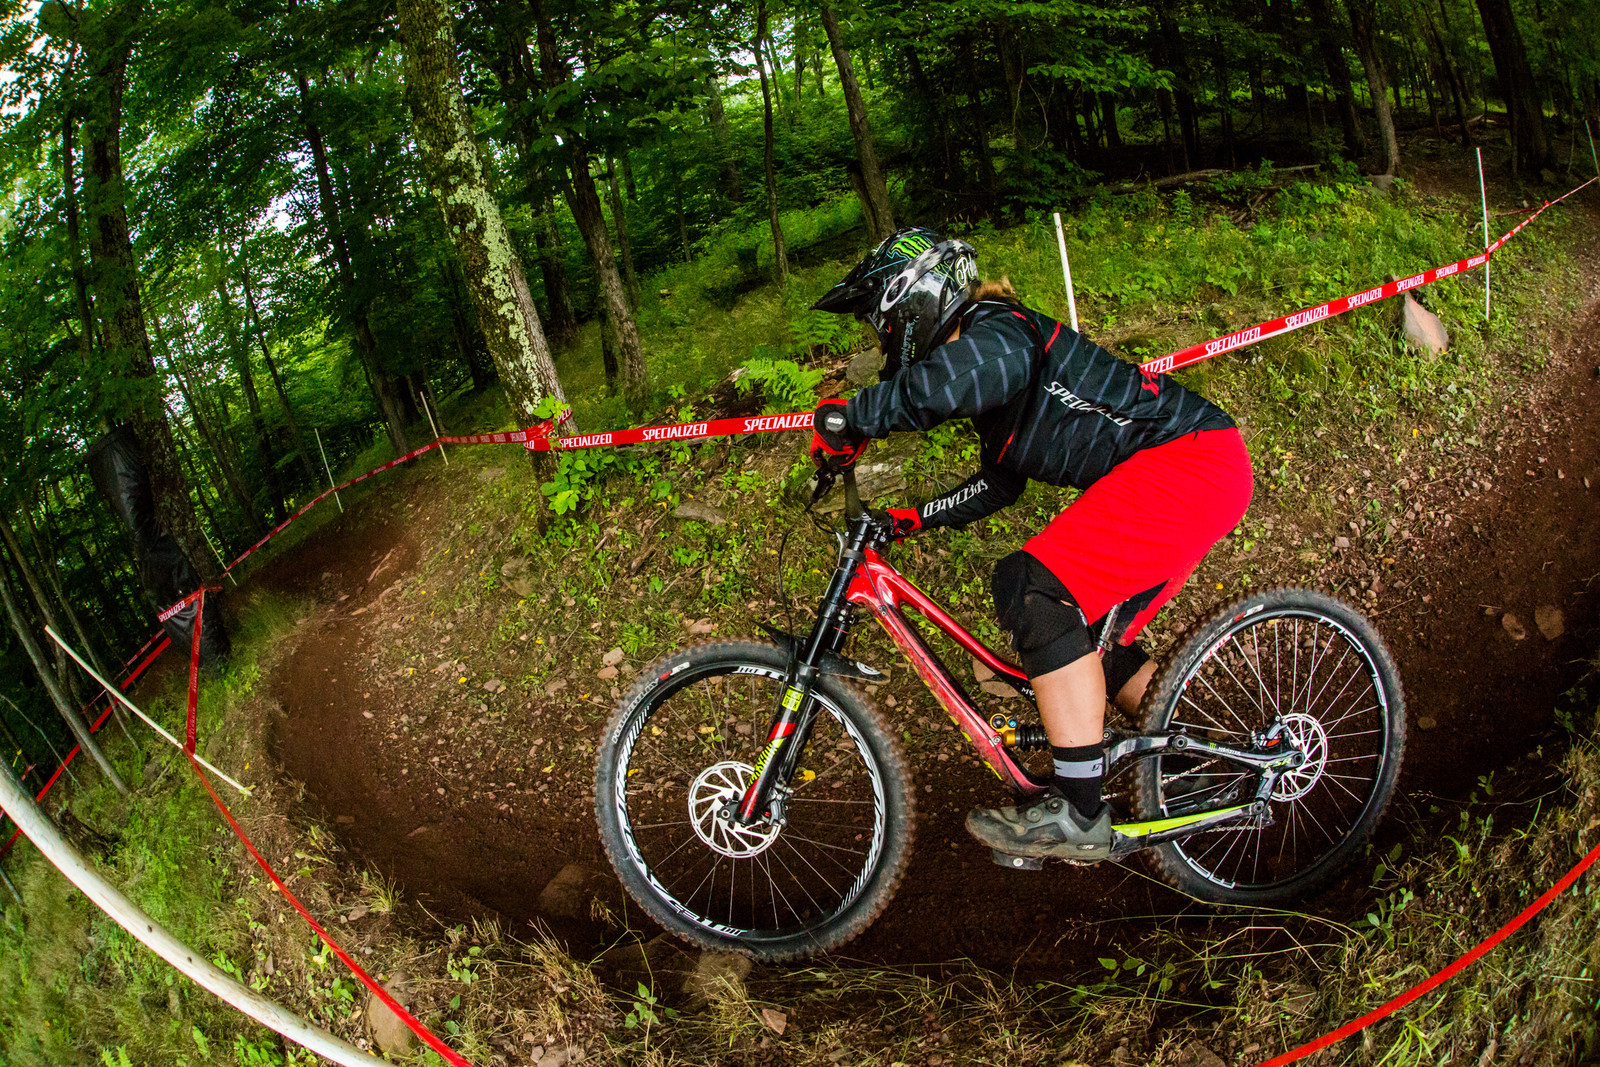 Angelina Palermo - RACE DAY GALLERY - 2017 Pro GRT, Windham, NY - Mountain Biking Pictures - Vital MTB